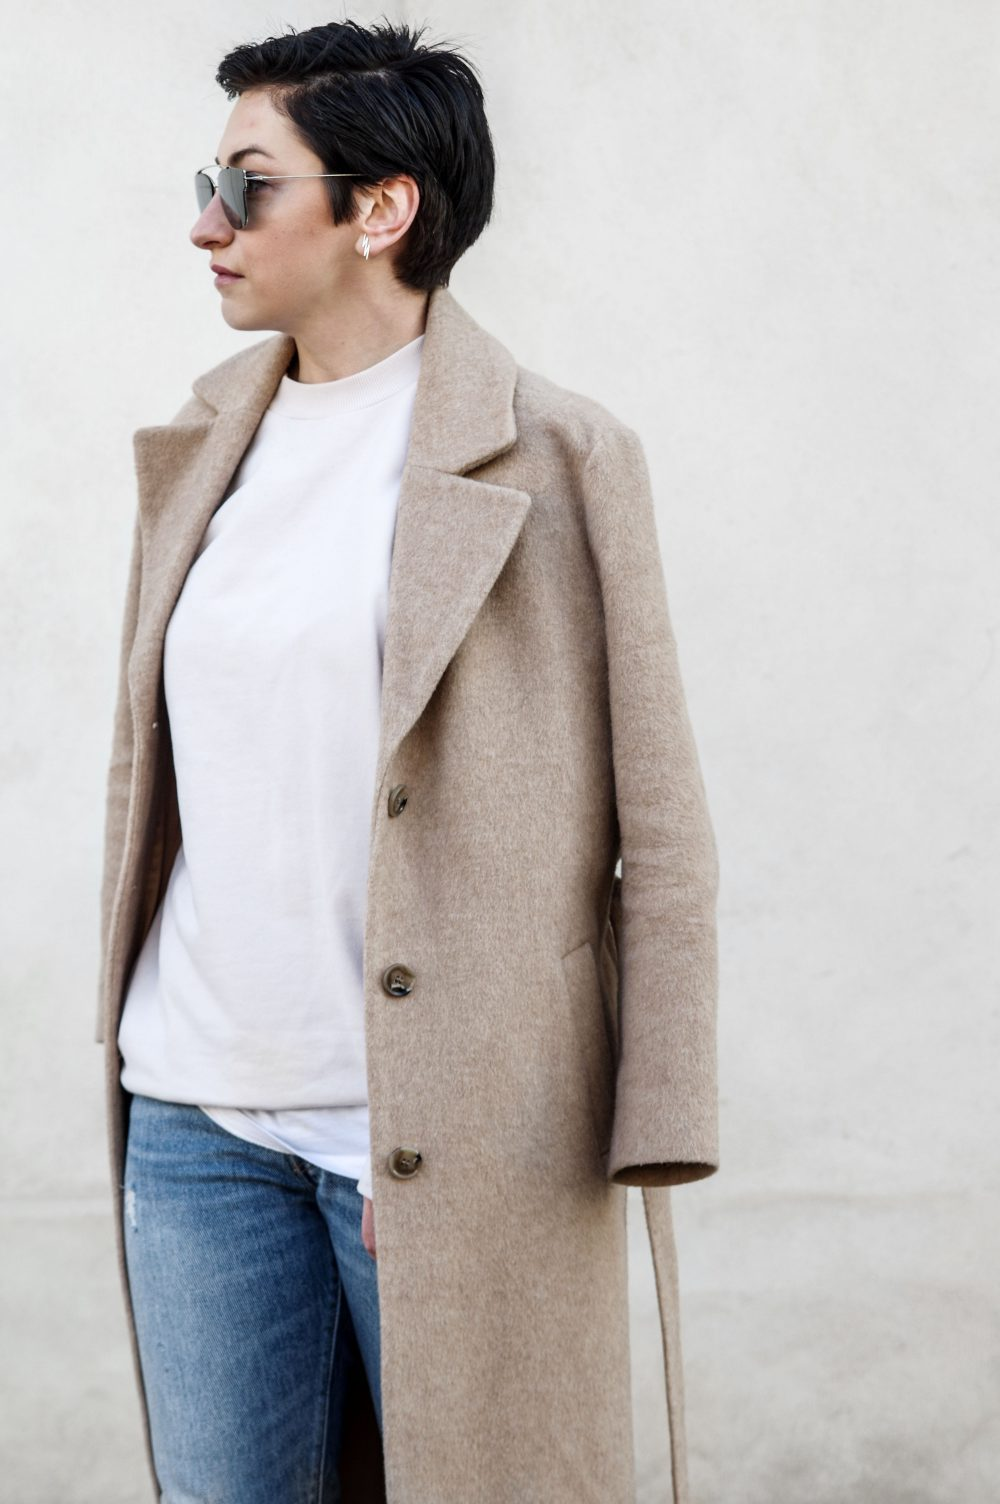 Scandinavian style, minimal streetstyle, copenhagen style, minimalistic style, coss stores, sweatshirt, short hair girl, dior sunglasses, casual outfit, spring outfit, outfit of the day 3